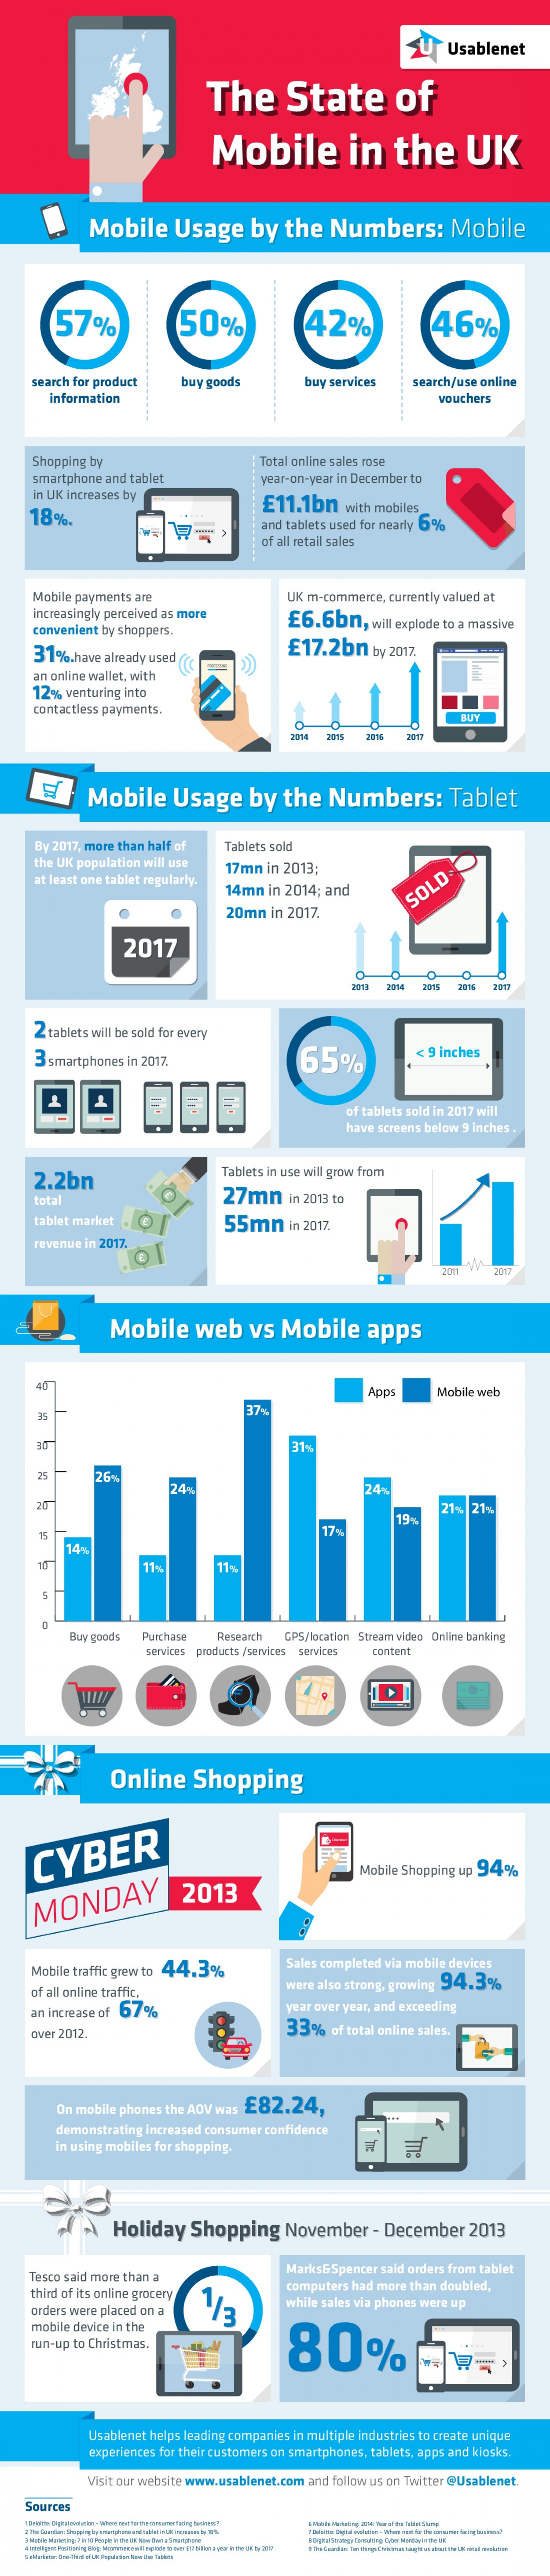 The State of Mobile in the UK Infographic